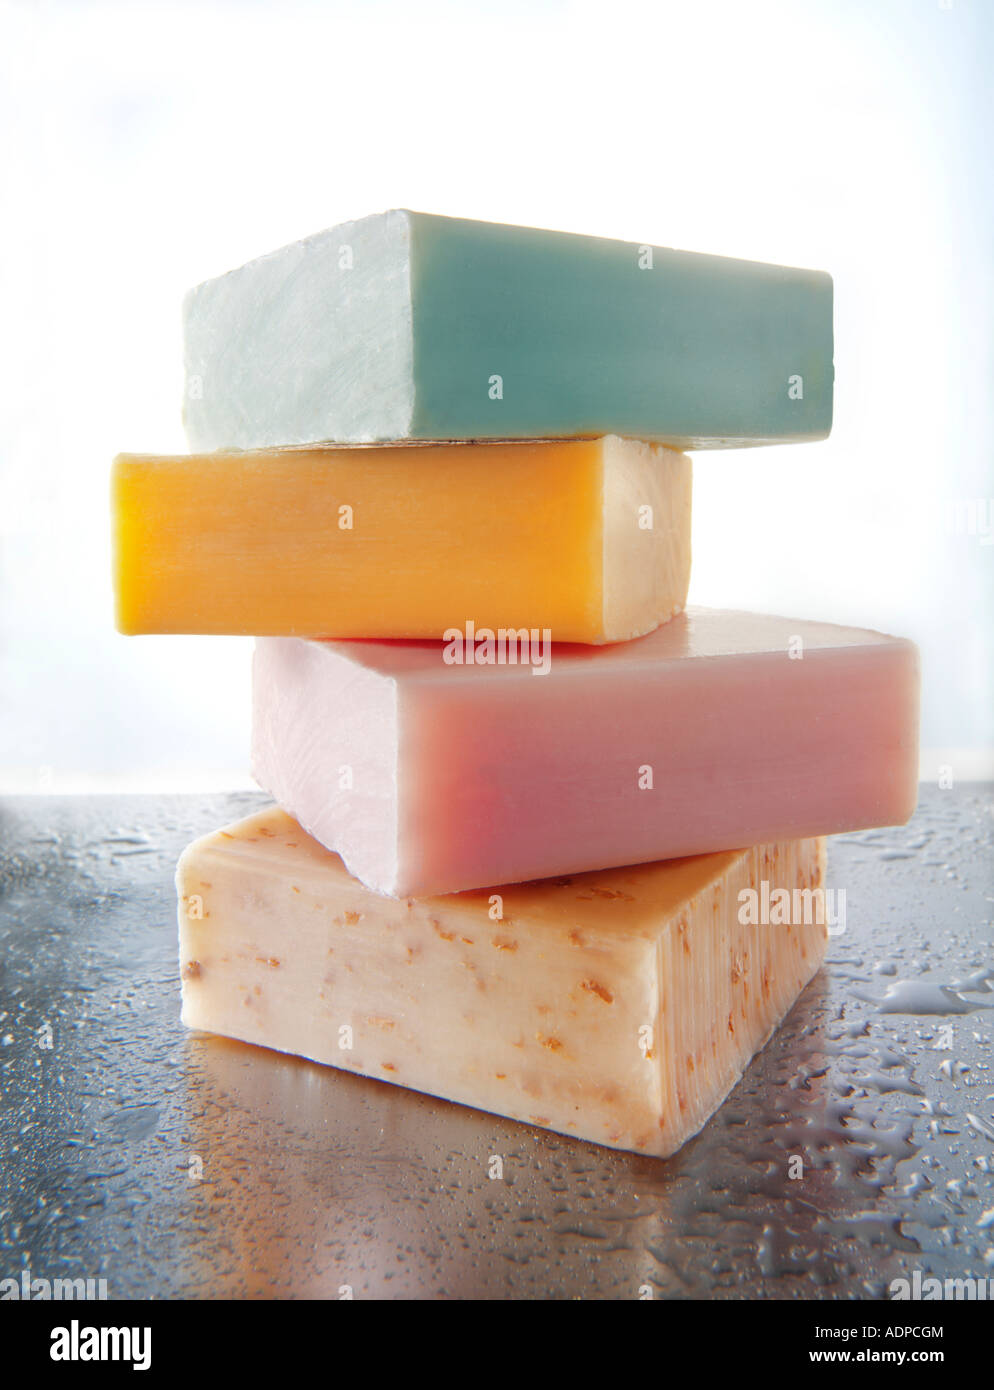 4 bars of scented hand made soaps. Bathroom Toiletries - Stock Image